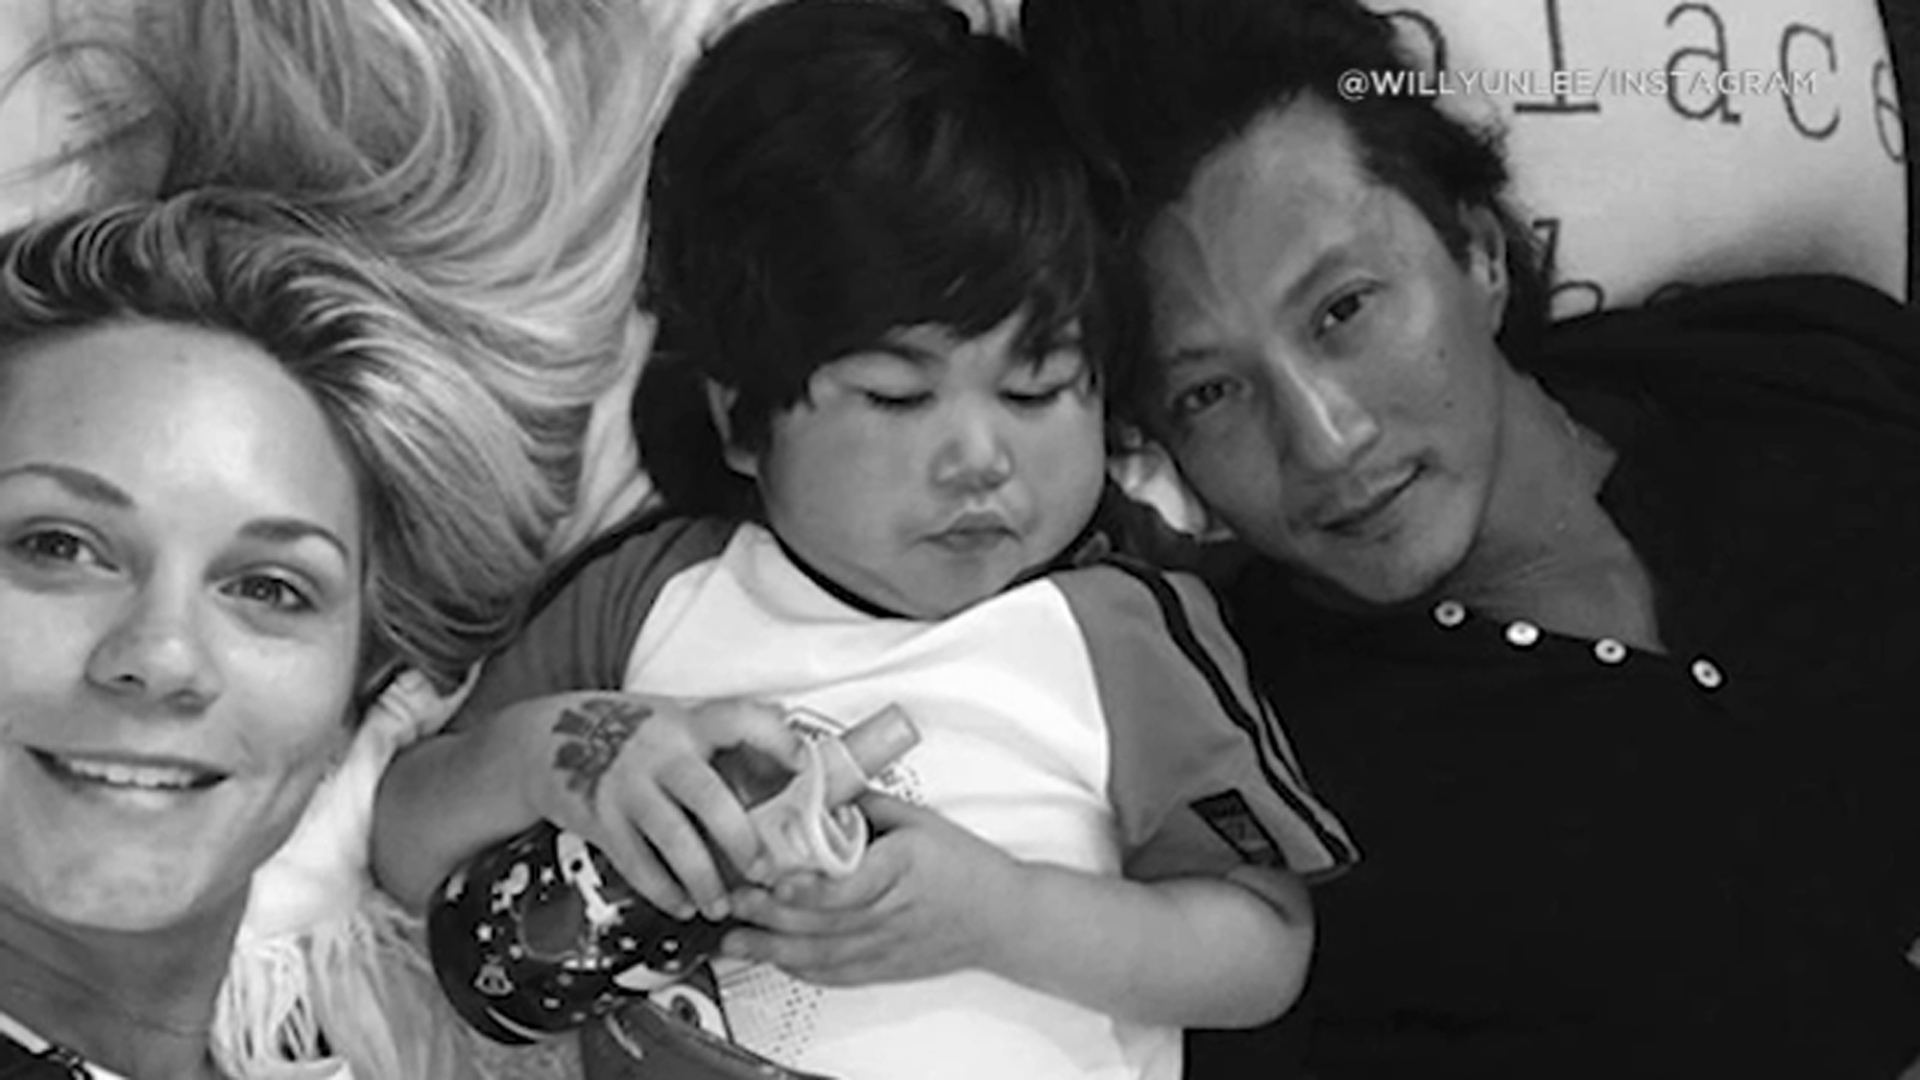 'The Good Doctor' actor Will Yun Lee's opens up about young son's rare condition Moyamoya disease